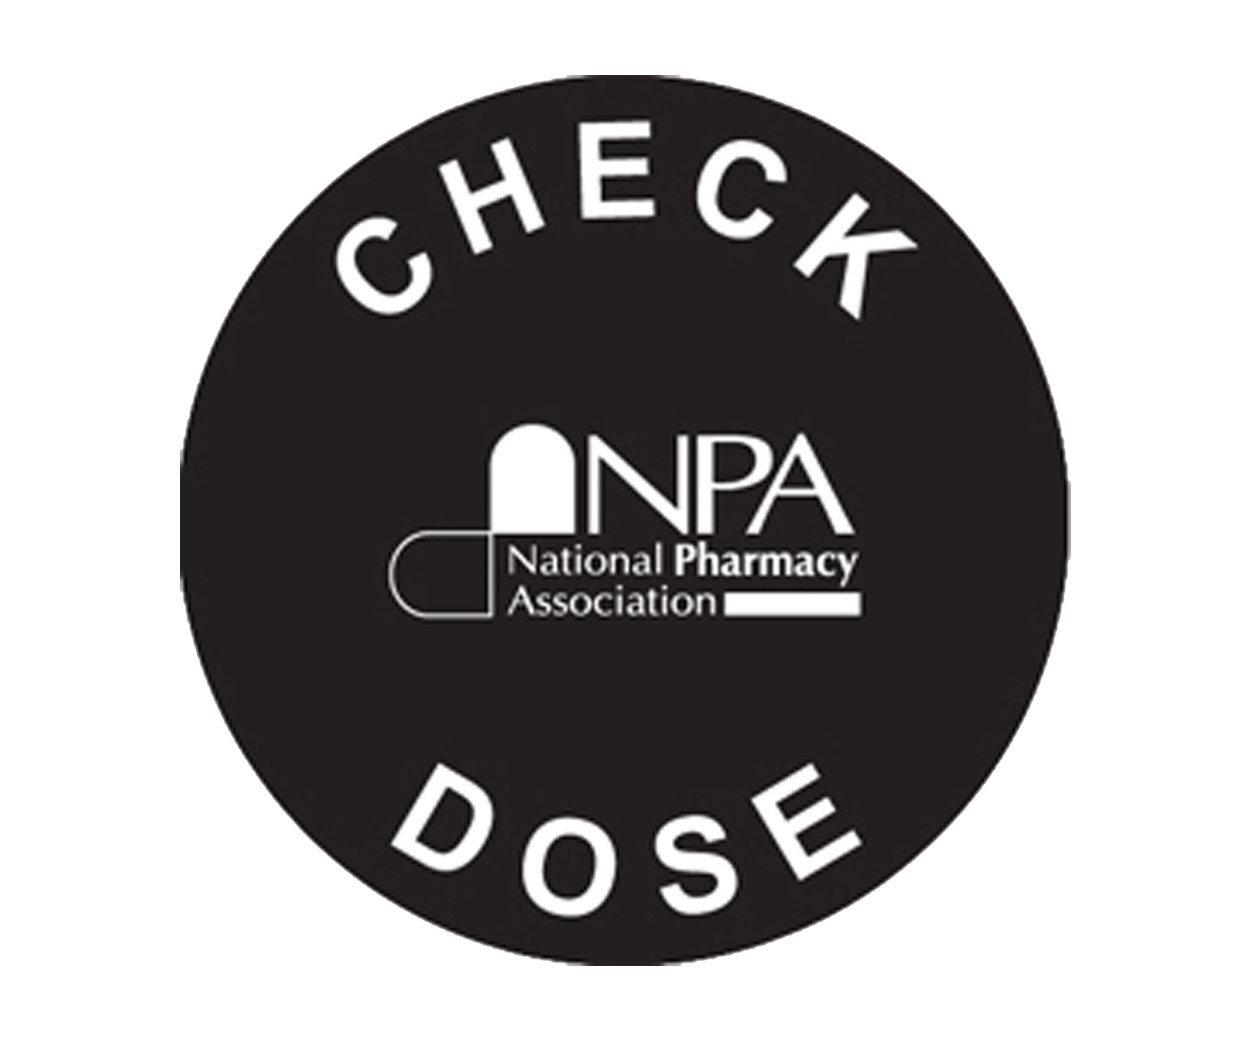 GREAT VALUE - Check Dose Prescription Alert Sticker - Pack of 1000